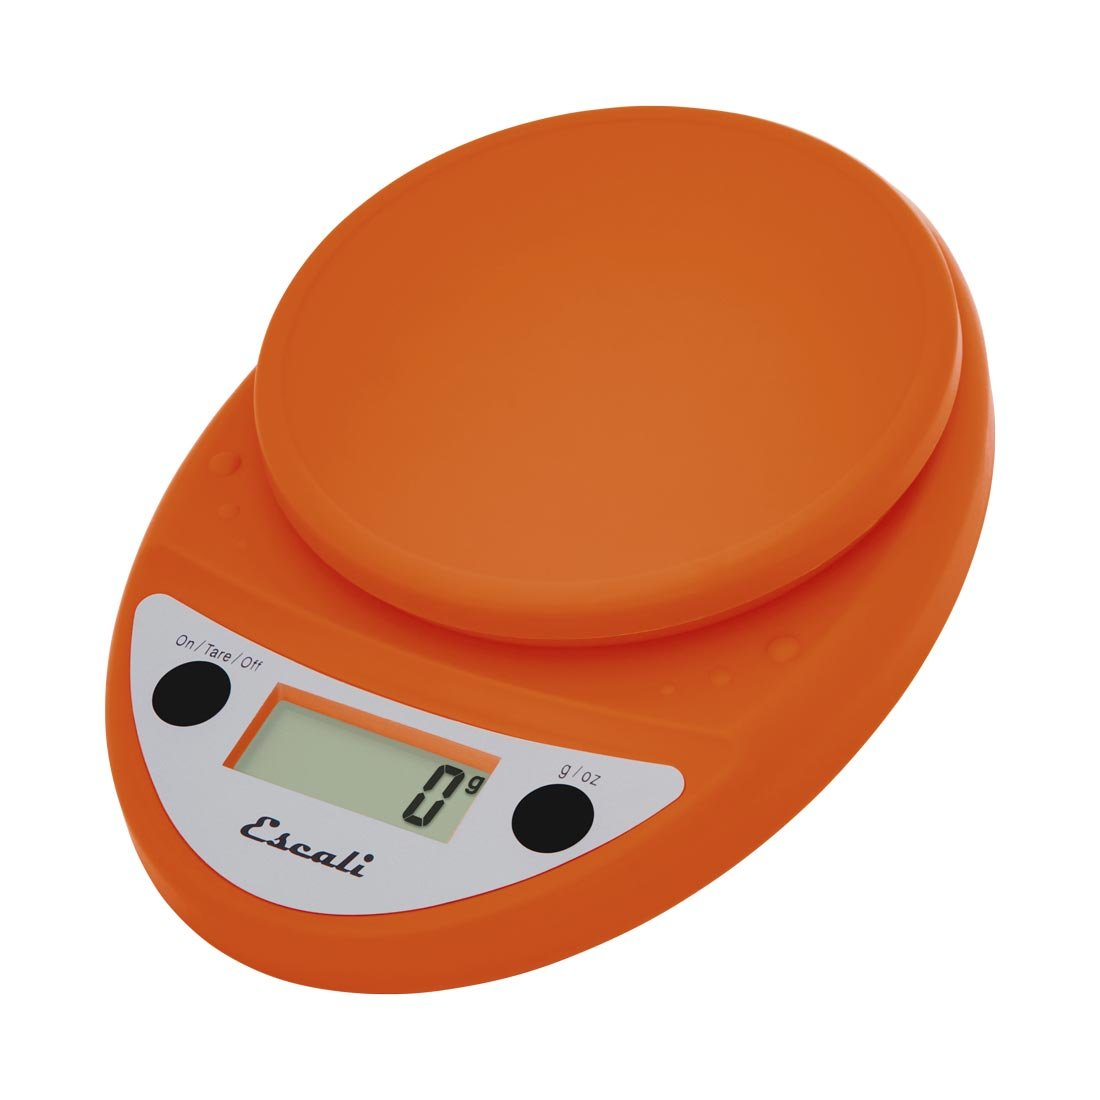 Escali Primo Digital Kitchen Scale (11 lb/ 5 kg Capacity) (0.05 oz/ 1 g Increment) Premium Food Scale for Baking and Cooking - Lightweight and Durable Design - Lifetime ltd. Warranty - Pumpkin Orange